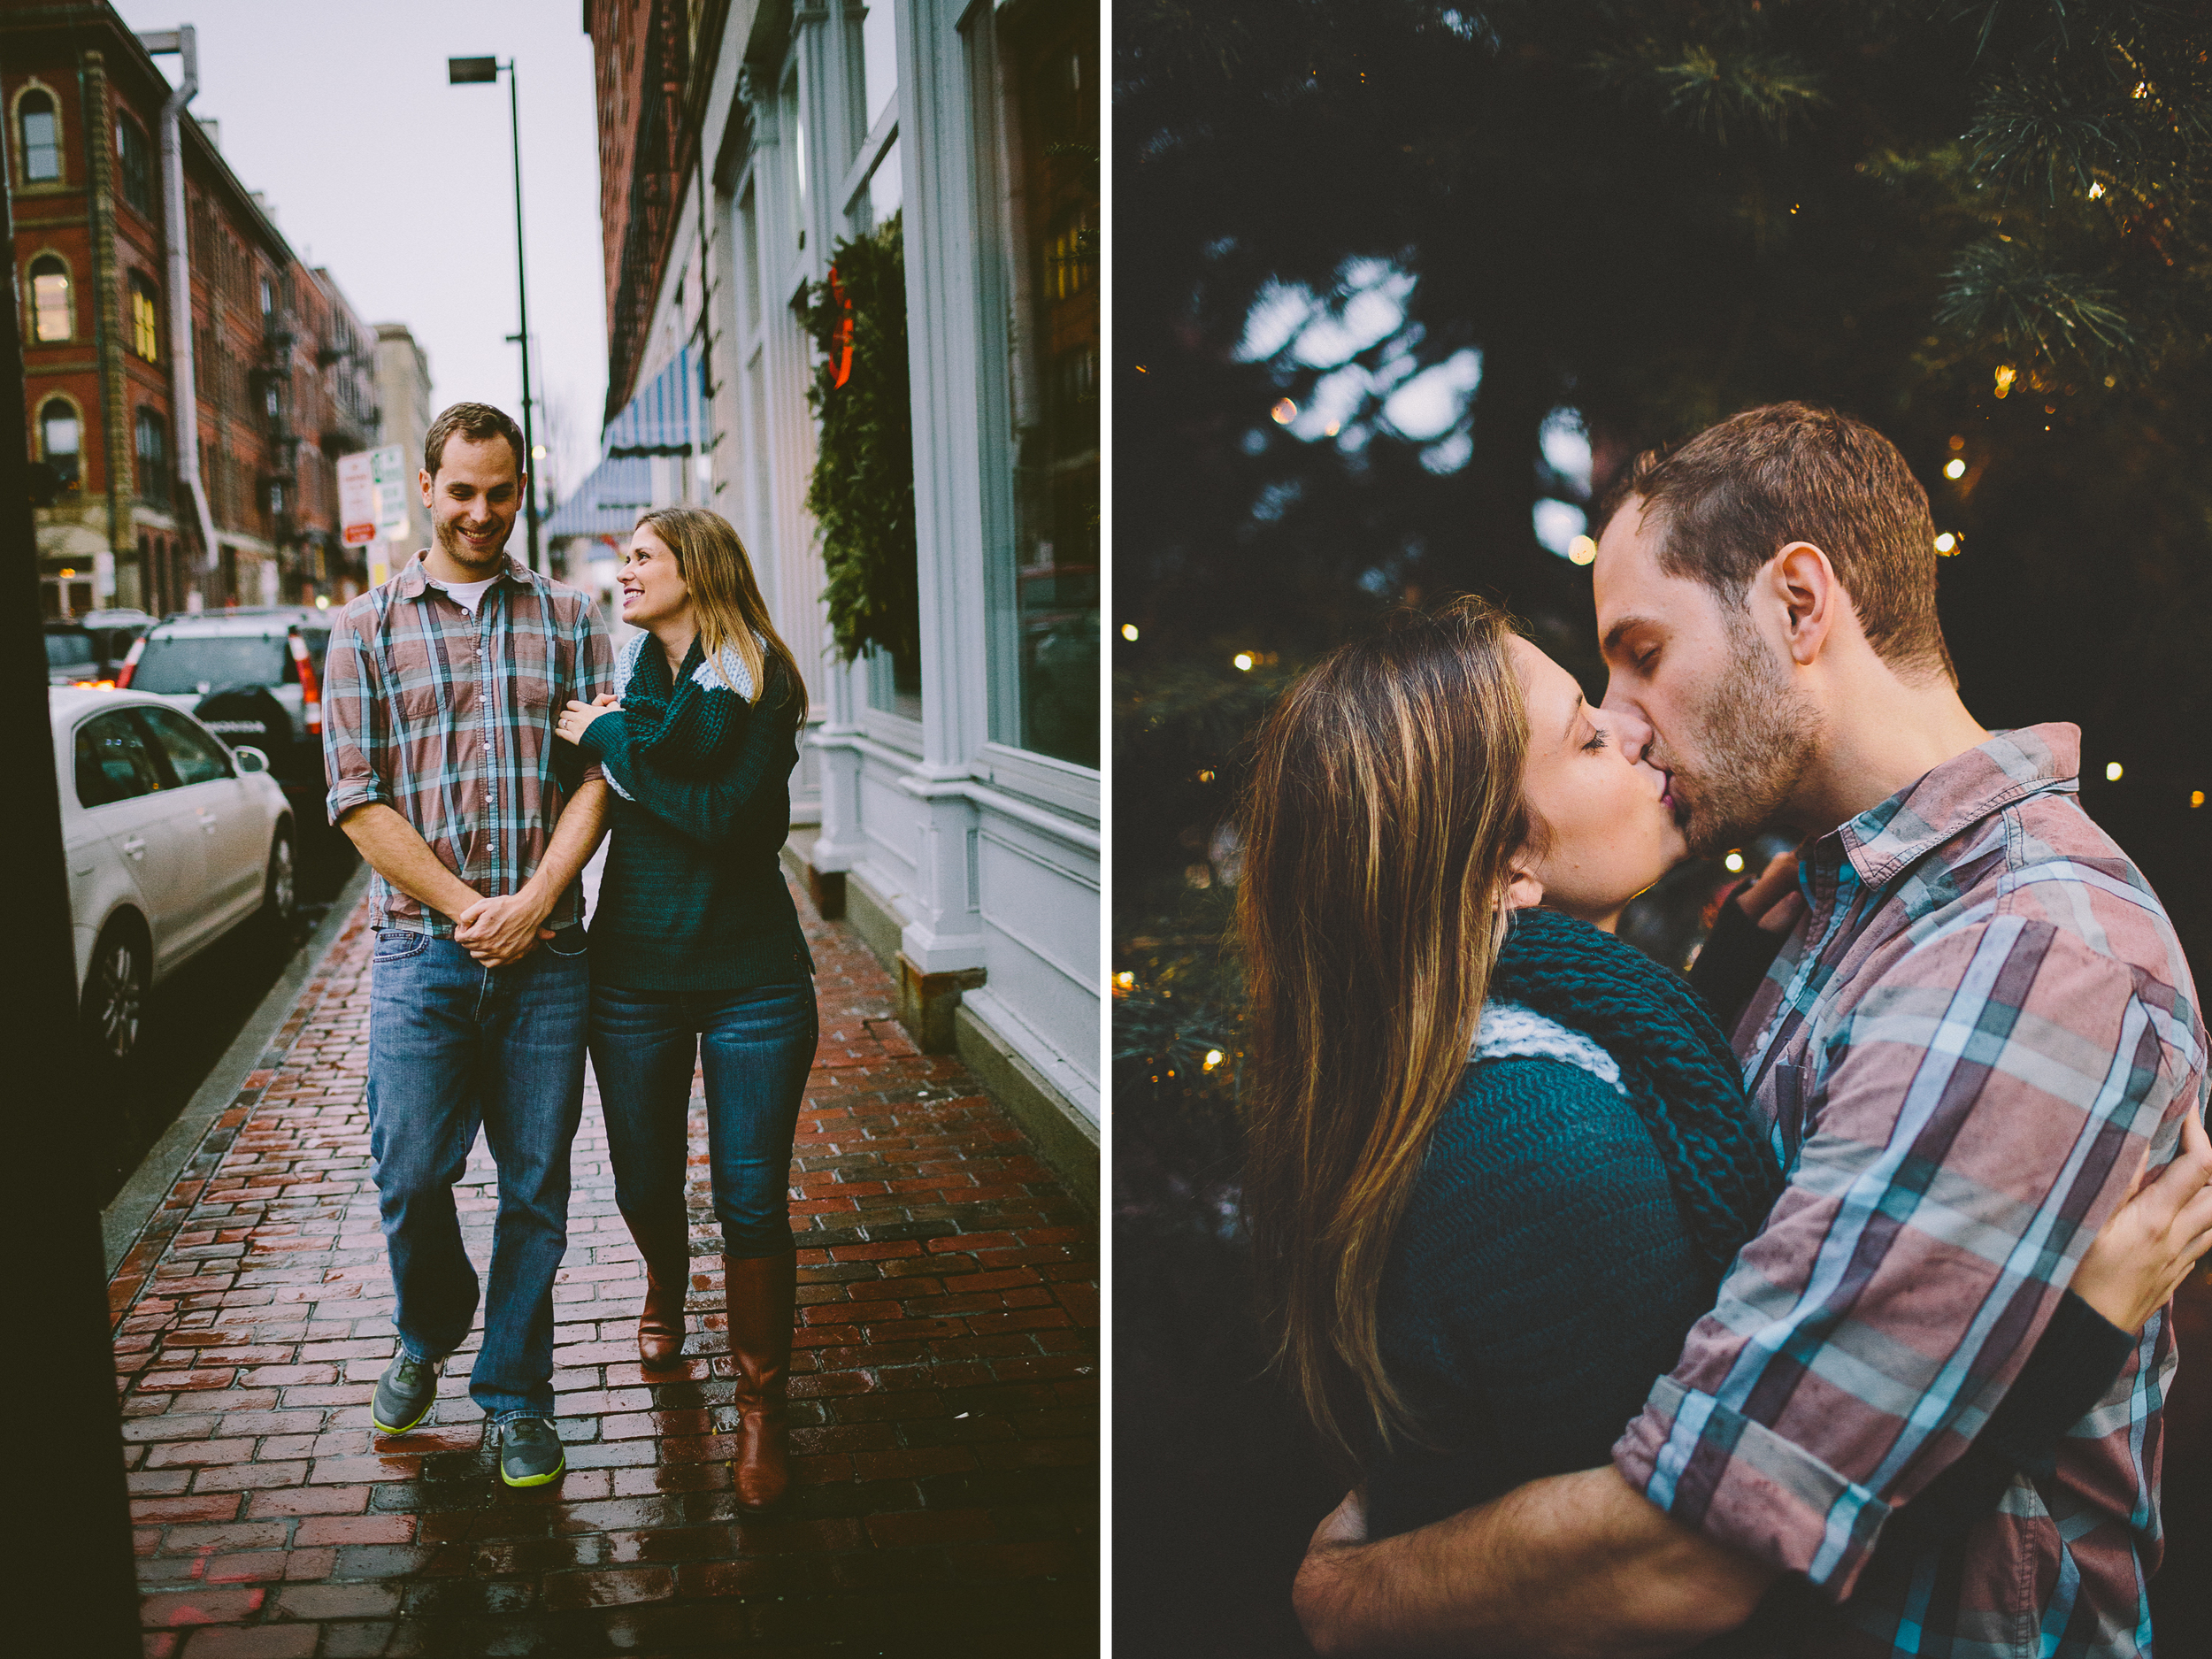 6portland_maine_engagement_photographer-1.jpg-1.jpg